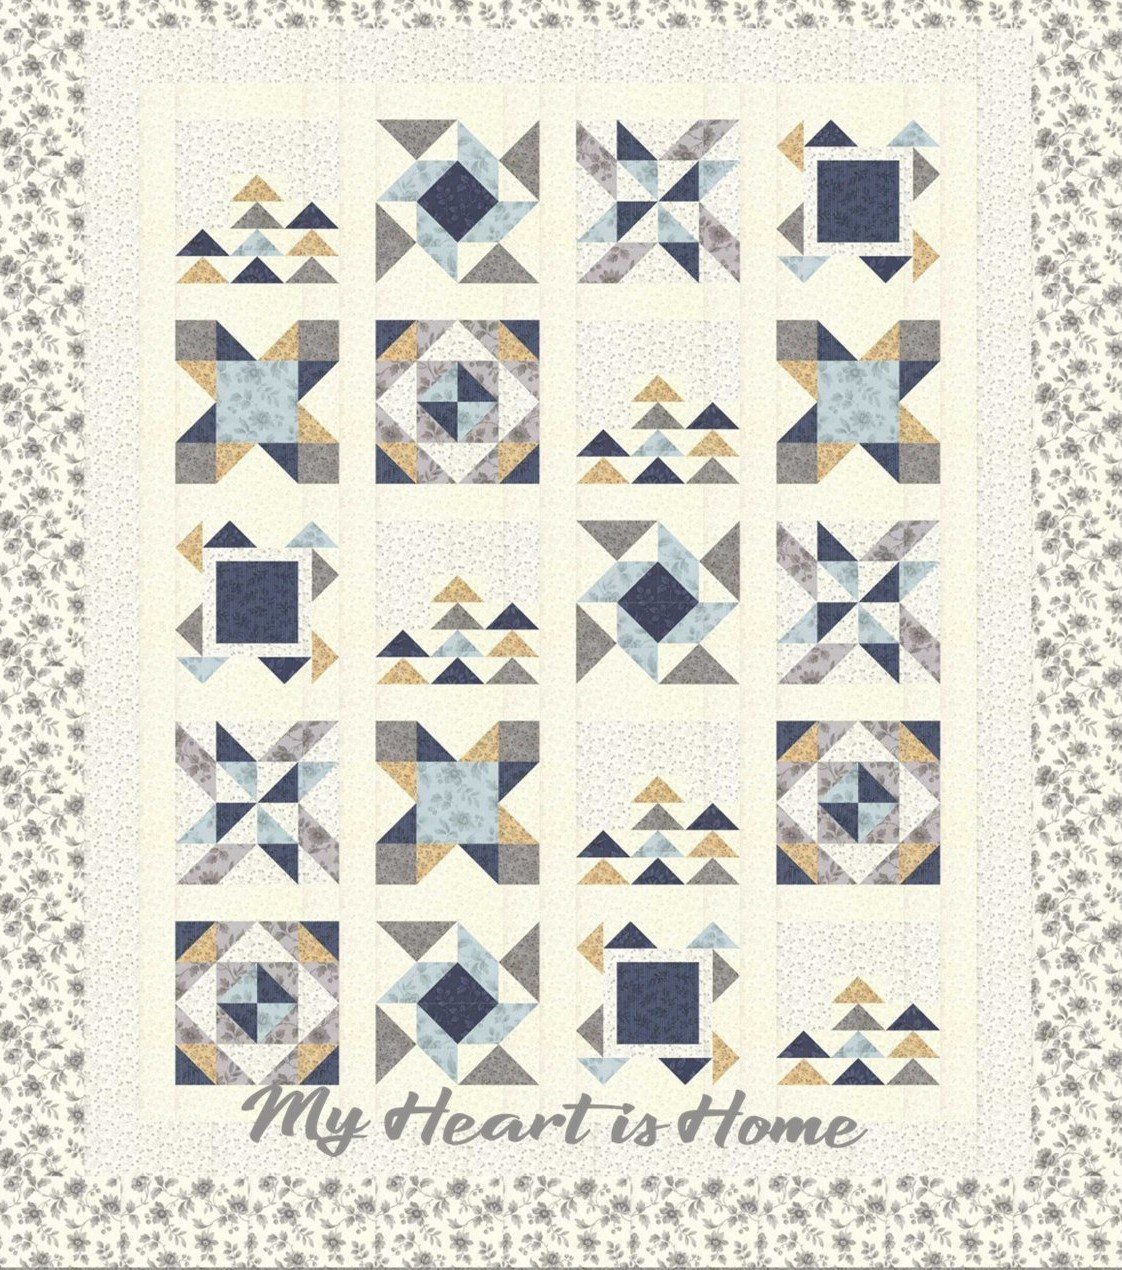 My Heart is Home Block of the Month